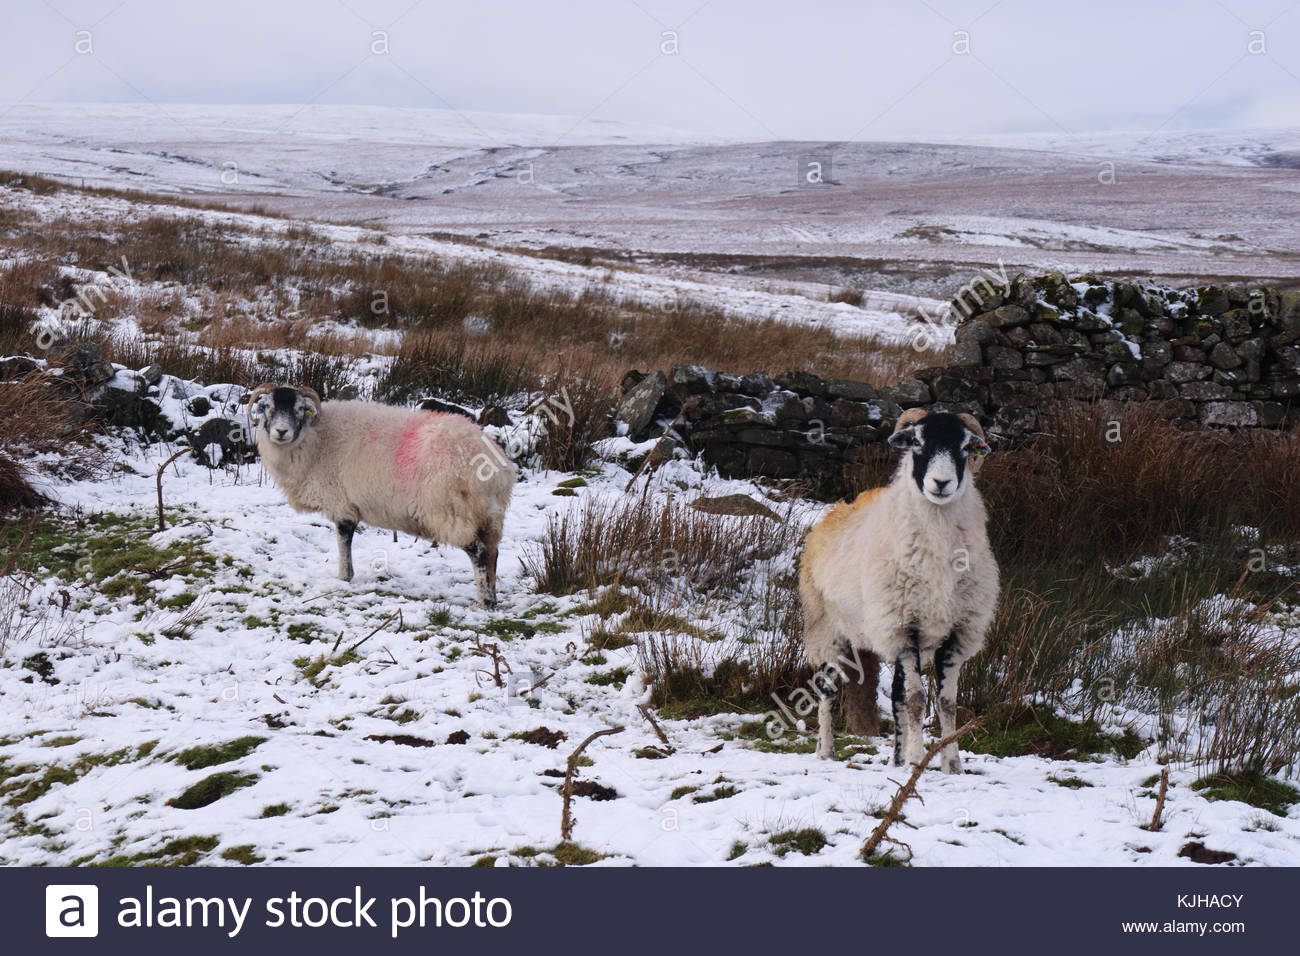 B6276 Middleton-in-Teesdale to Brough Road, Co Durham, UK. 25th Nov, 2017. On Wemmergill Moor the colourful sheep - Stock Image